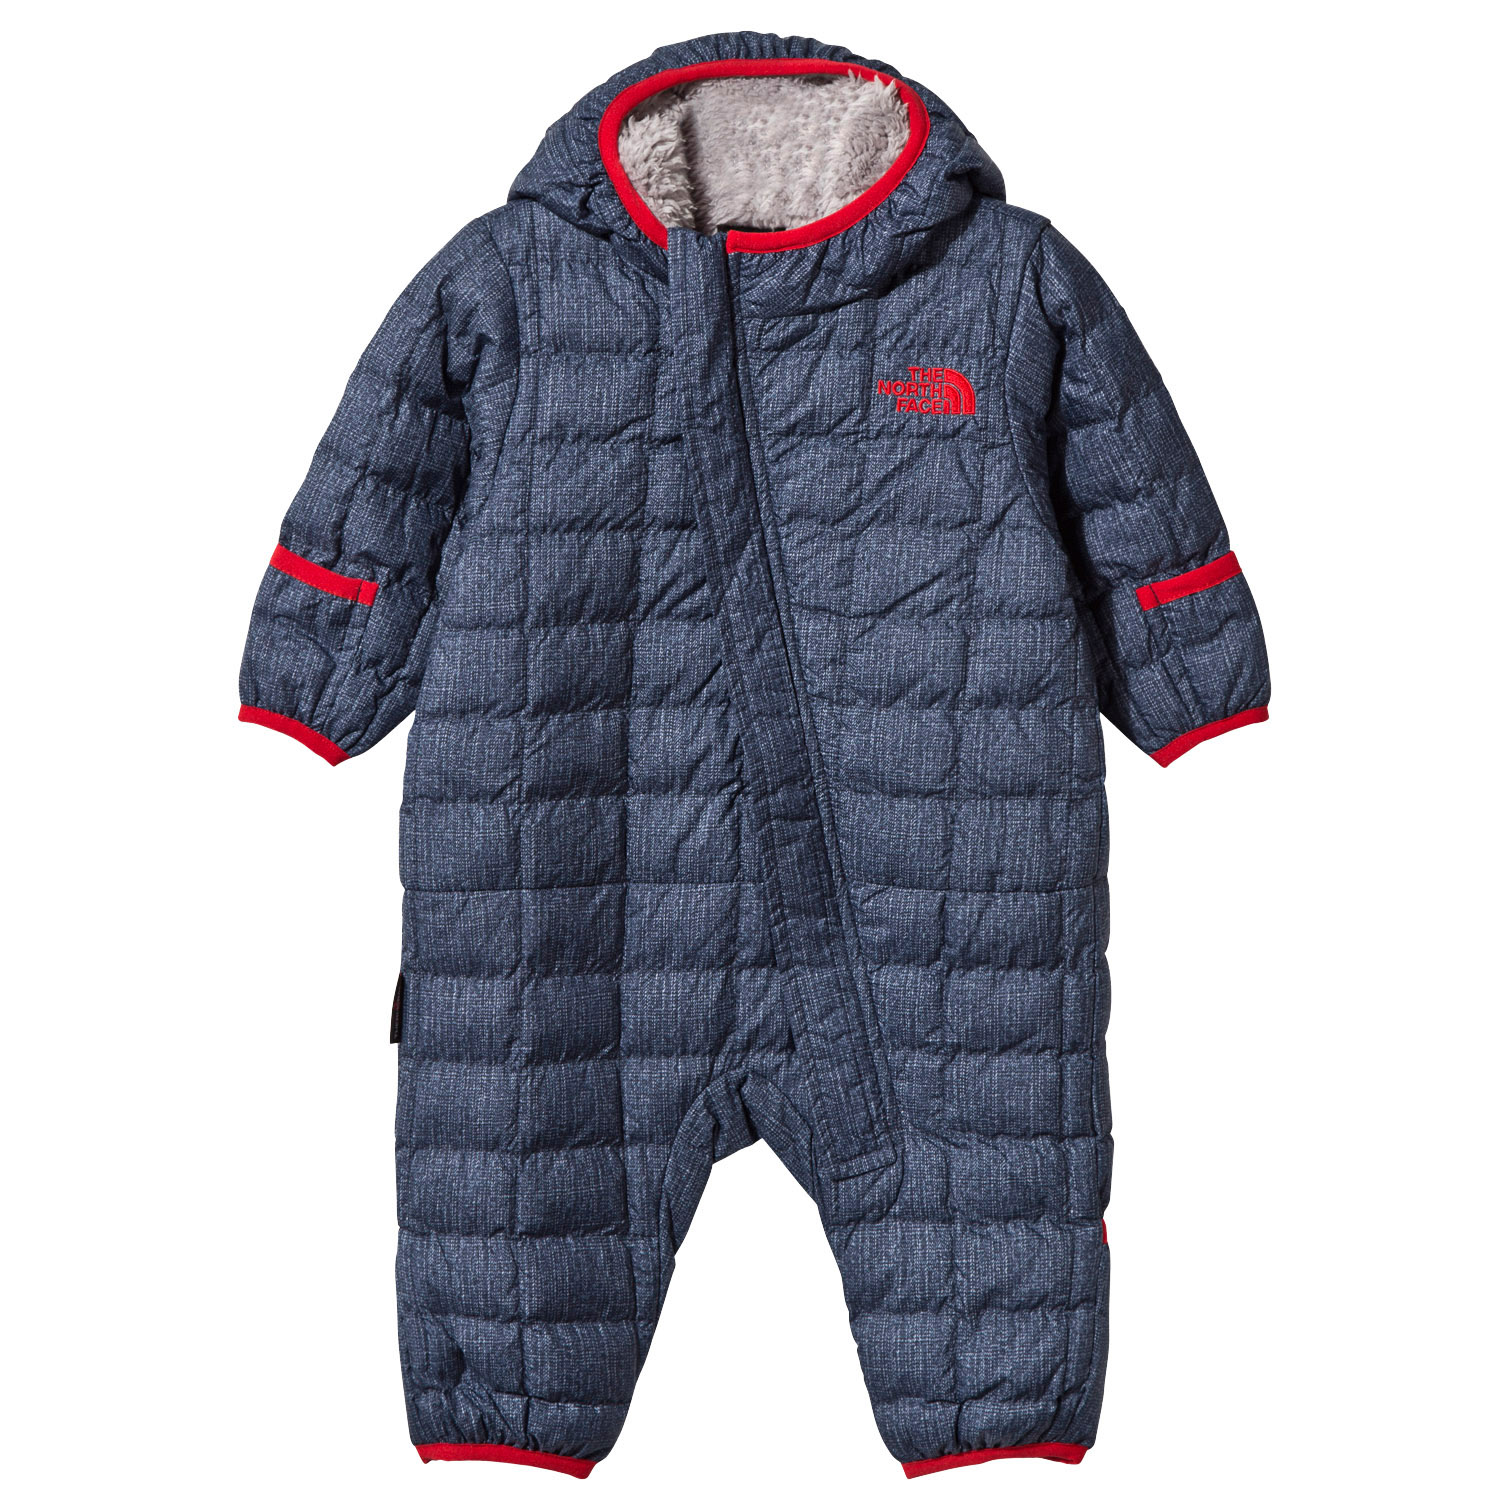 840e53ecfea8 The North Face Denim Print Infant ThermoBall Snowsuit